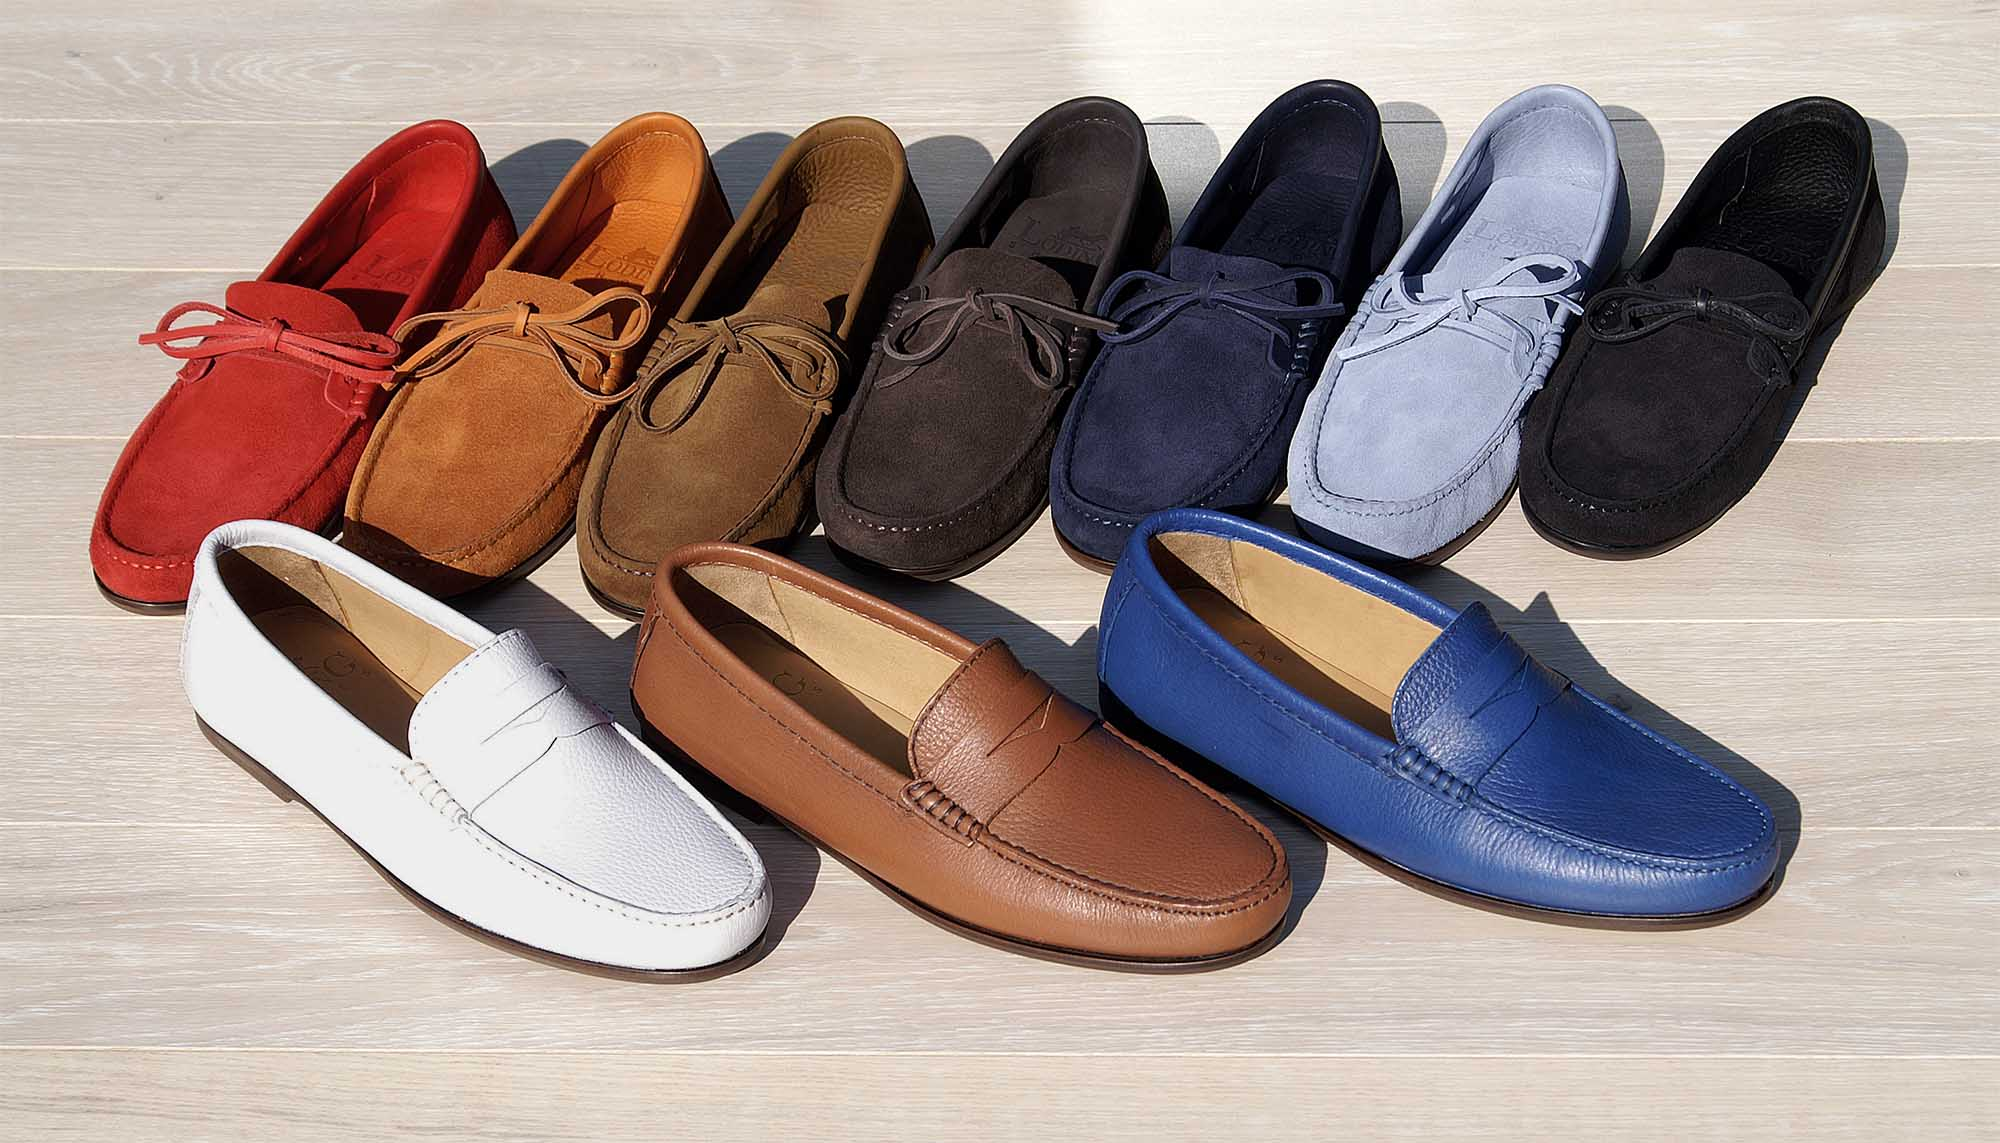 Loafers sales -30%